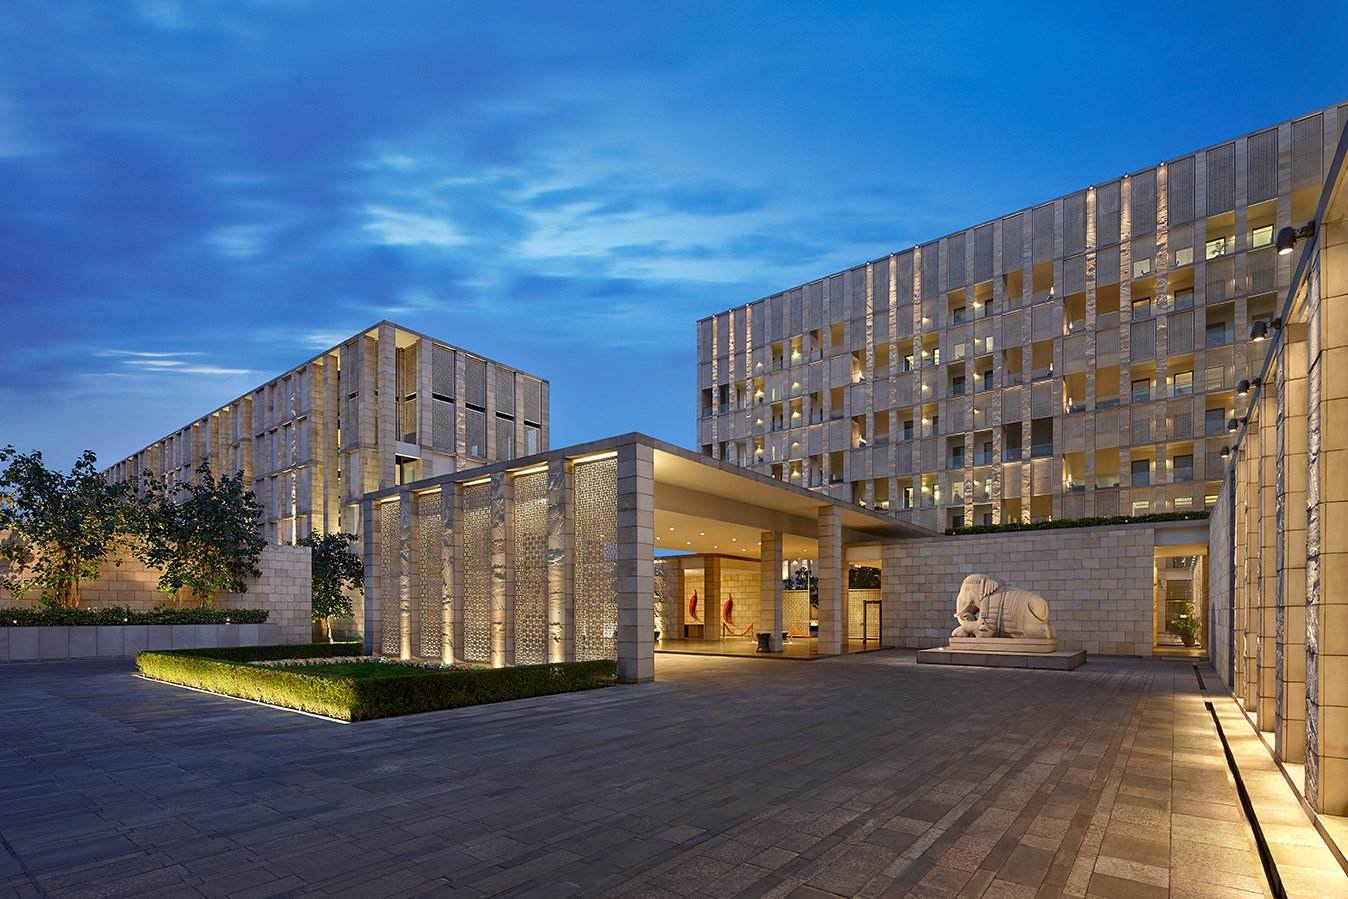 Hotels sky outdoor property Architecture house urban area building tower block residential area neighbourhood professional facade estate headquarters